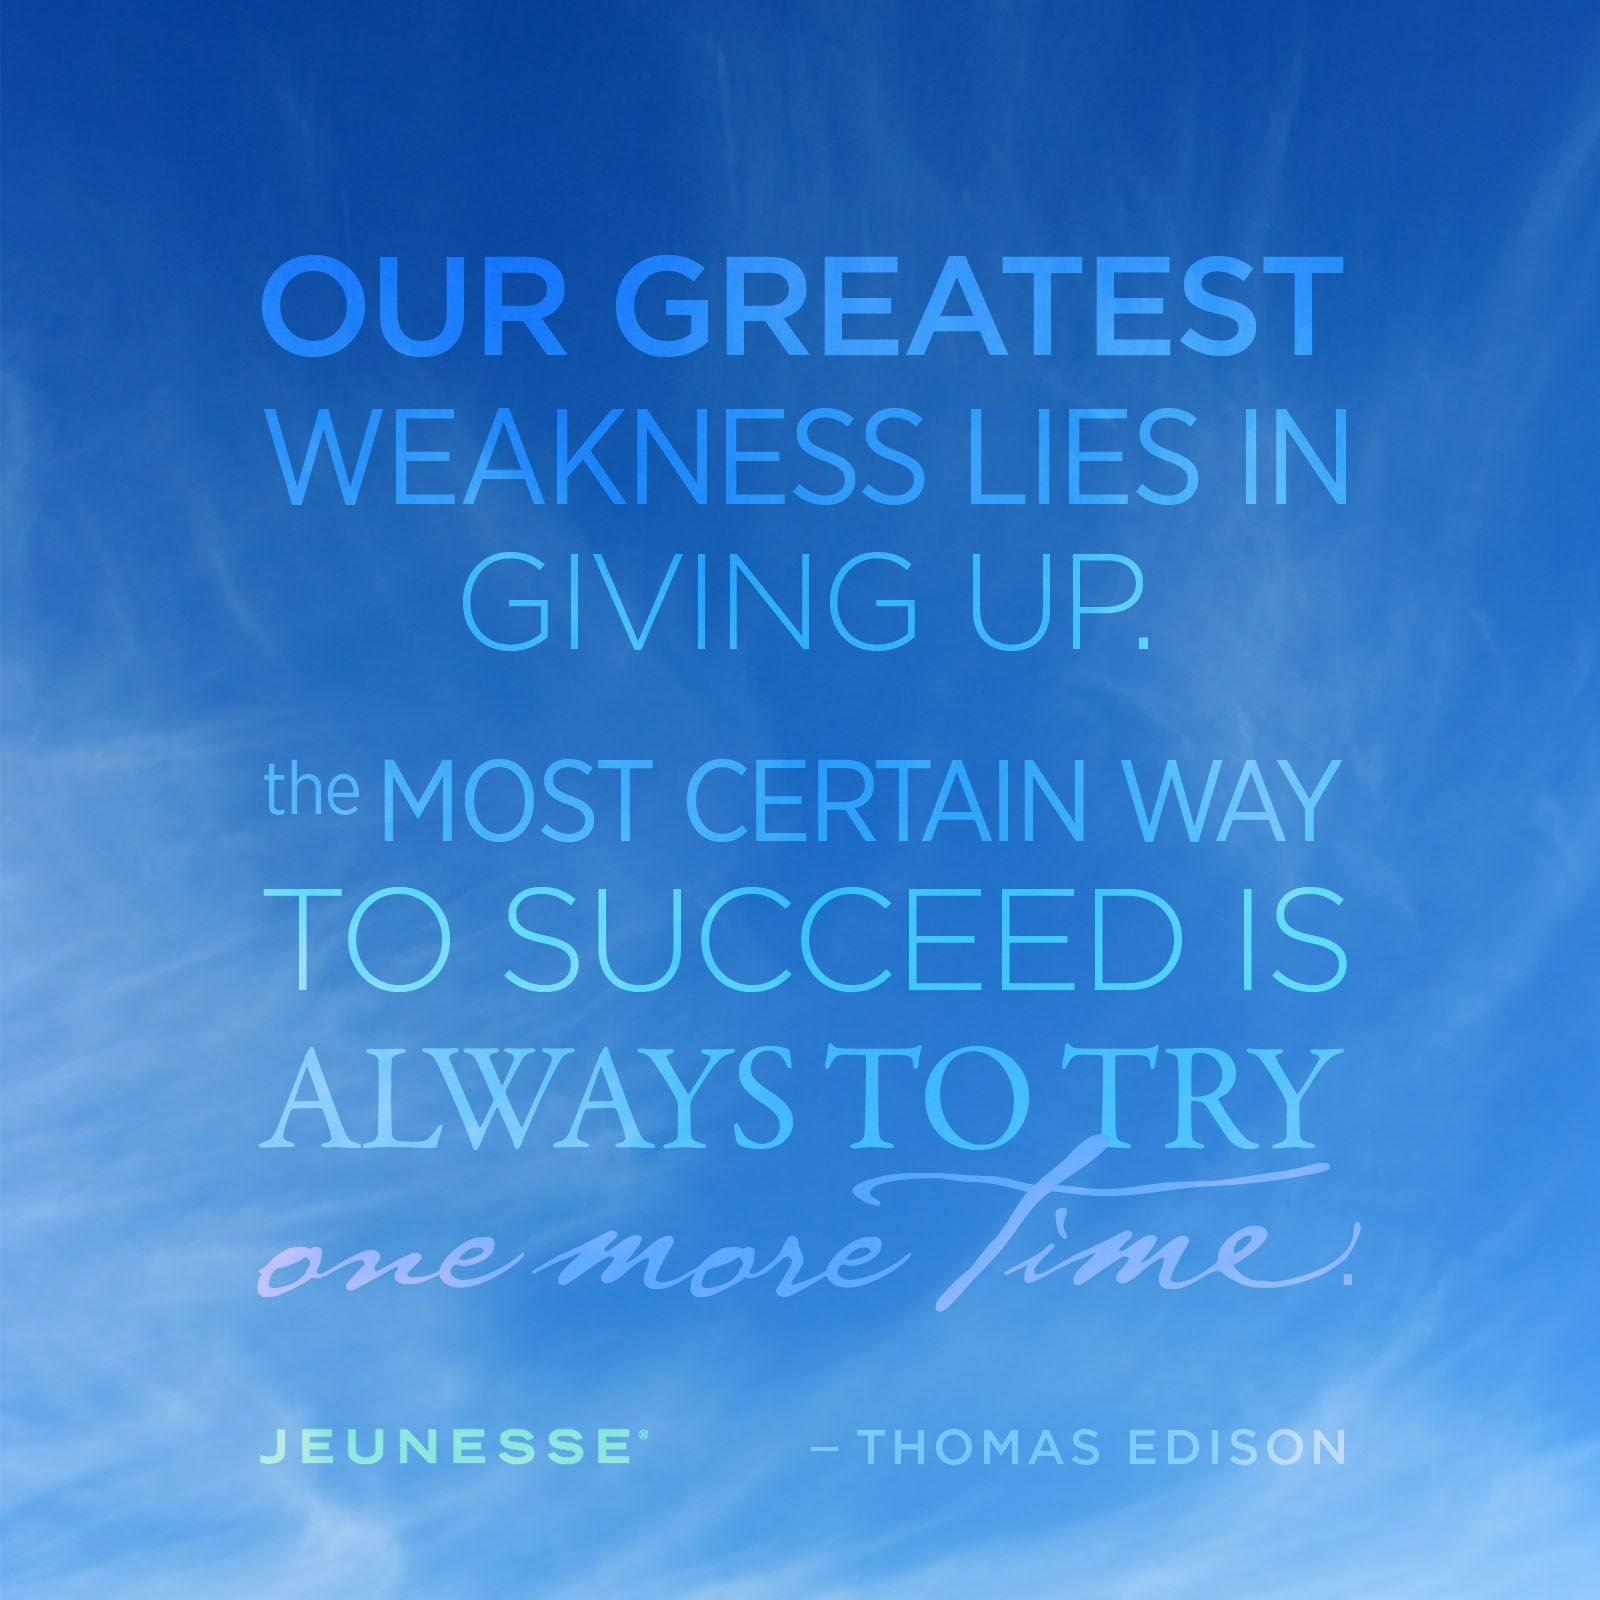 Most Inspirational Quotes About Not Giving Up: Our Greatest Weakness Lies In Giving Up. The Most Certain